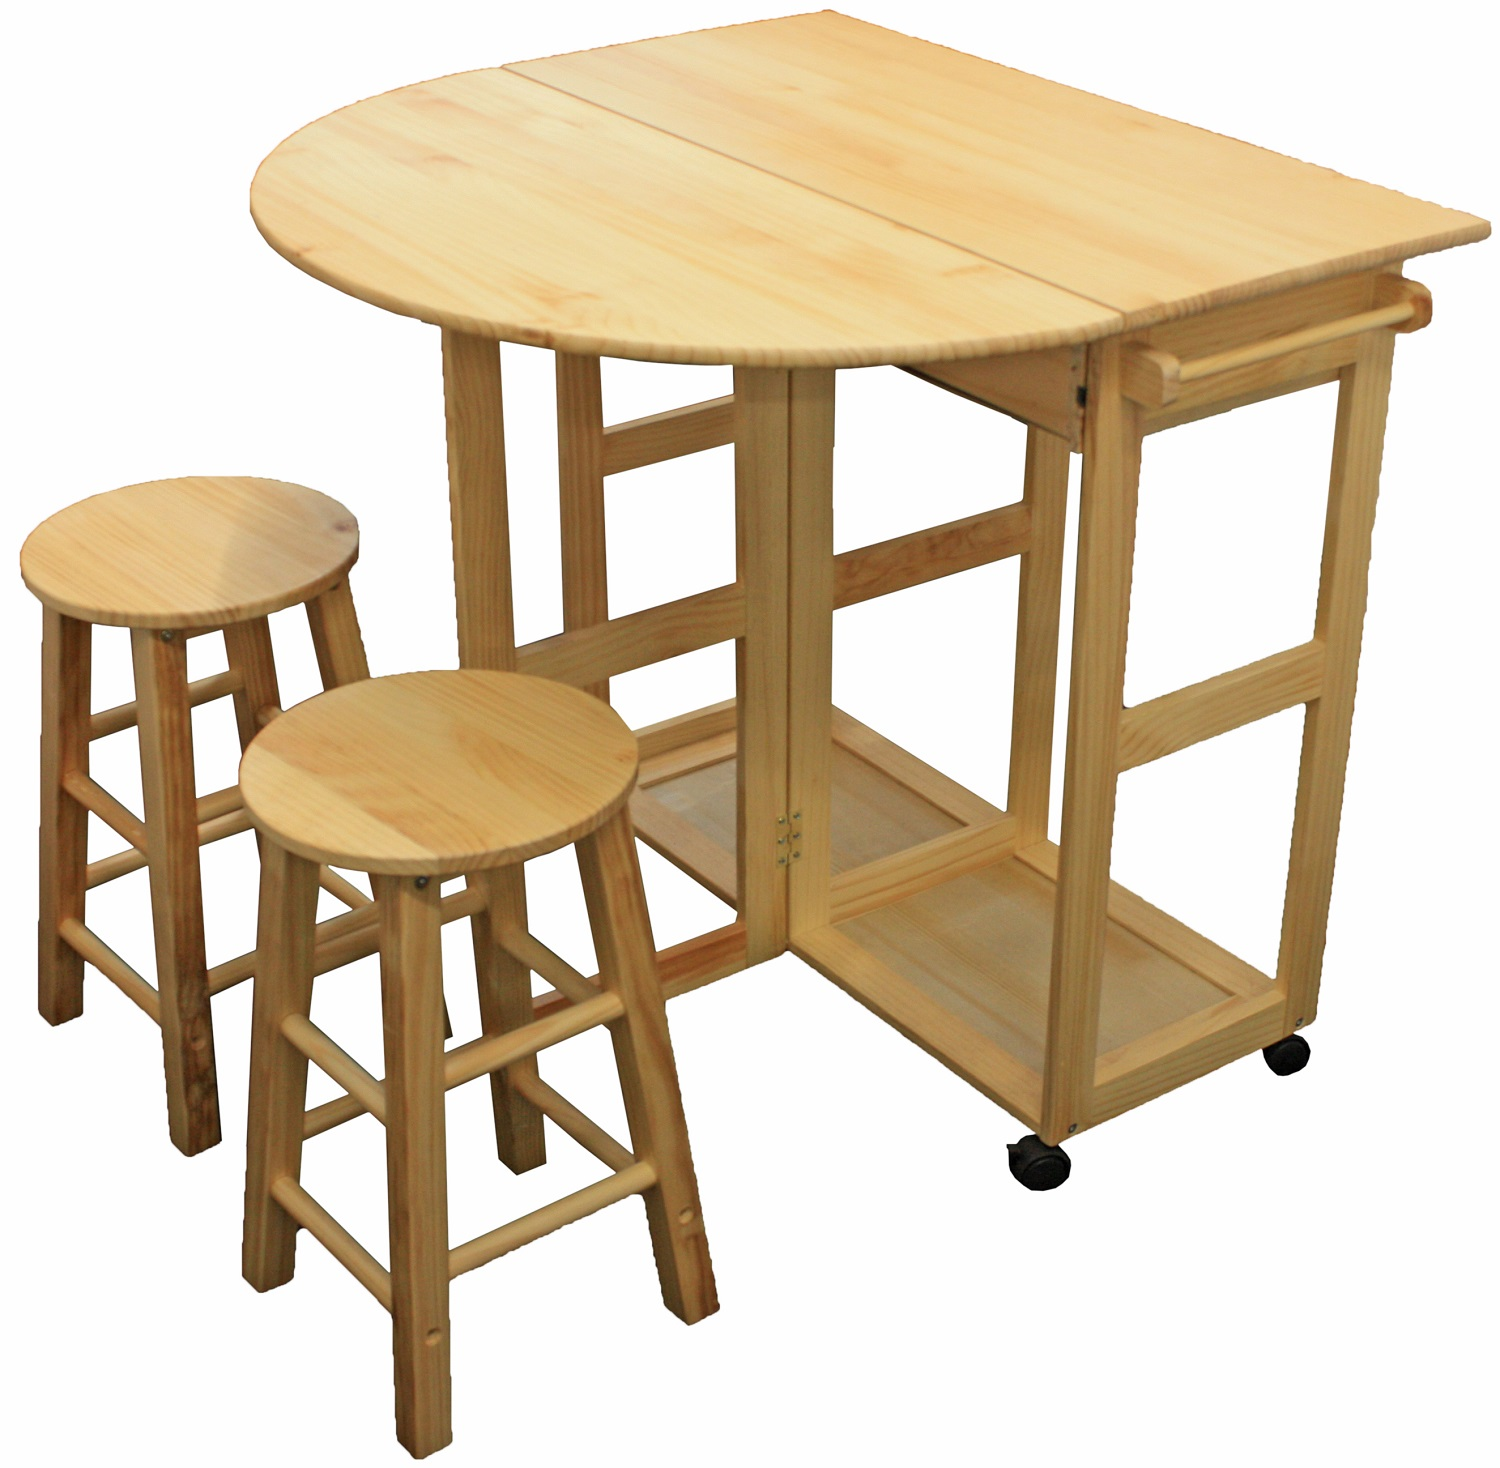 MARIBELLE FOLDING TABLE AND STOOL SET KITCHEN BREAKFAST  : ma7new201 from www.ebay.co.uk size 1500 x 1468 jpeg 321kB